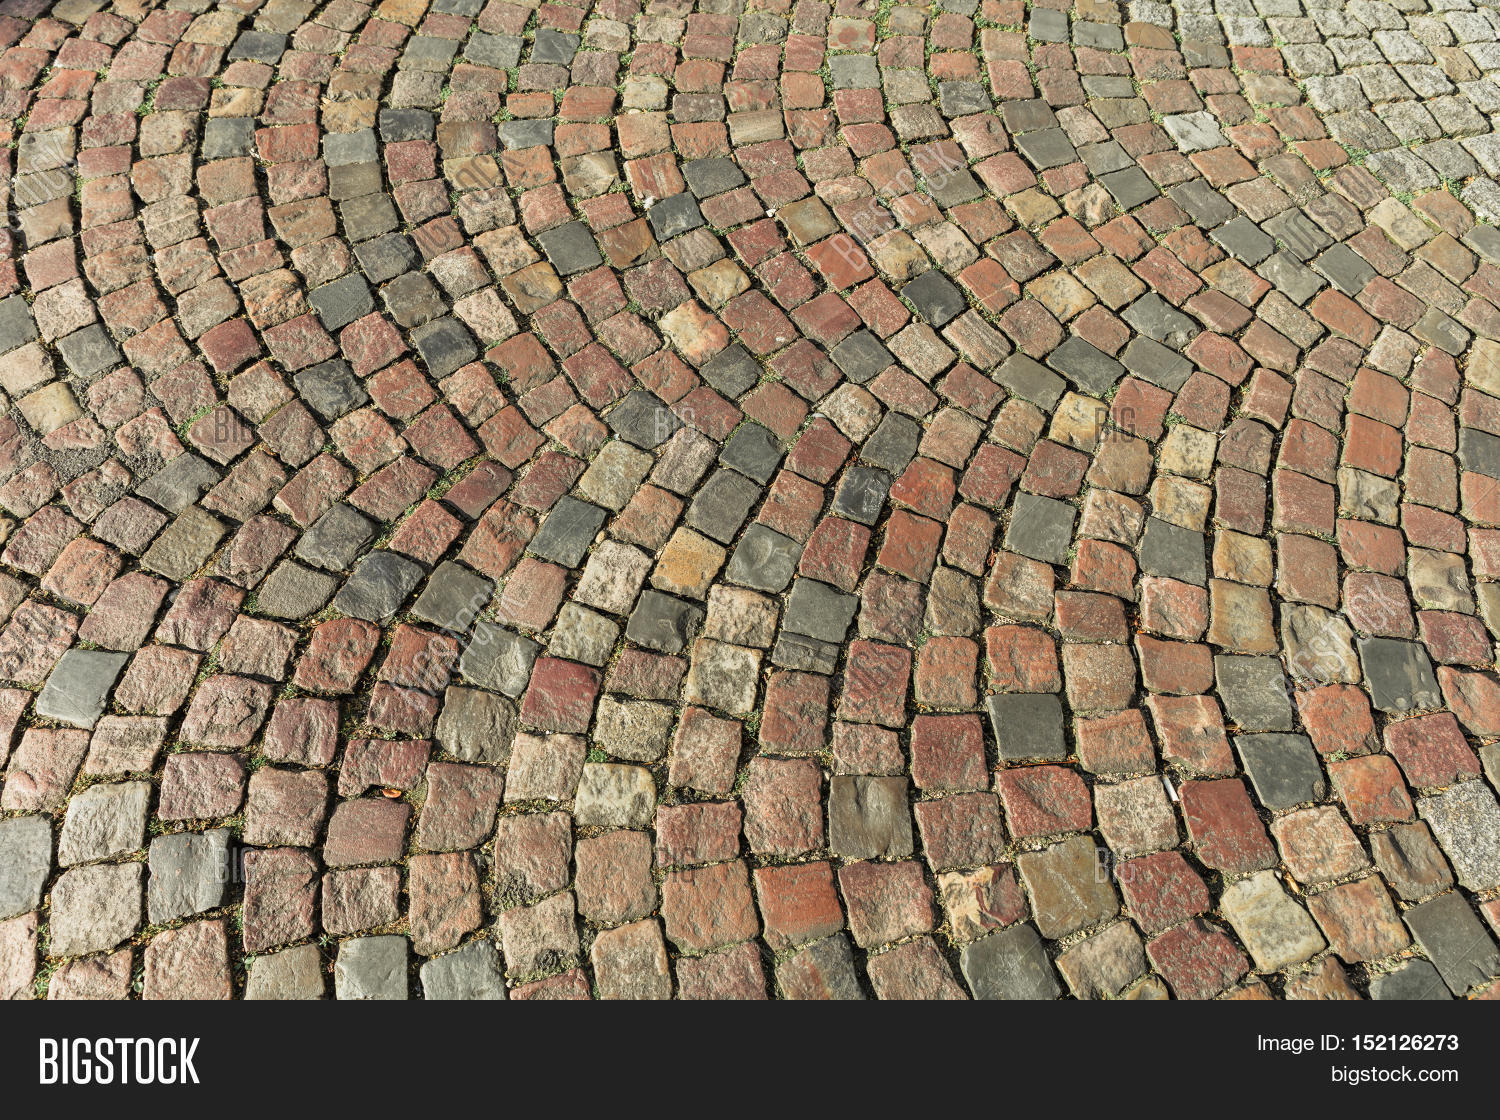 Stone Pavement In Paris : Street paved image photo free trial bigstock